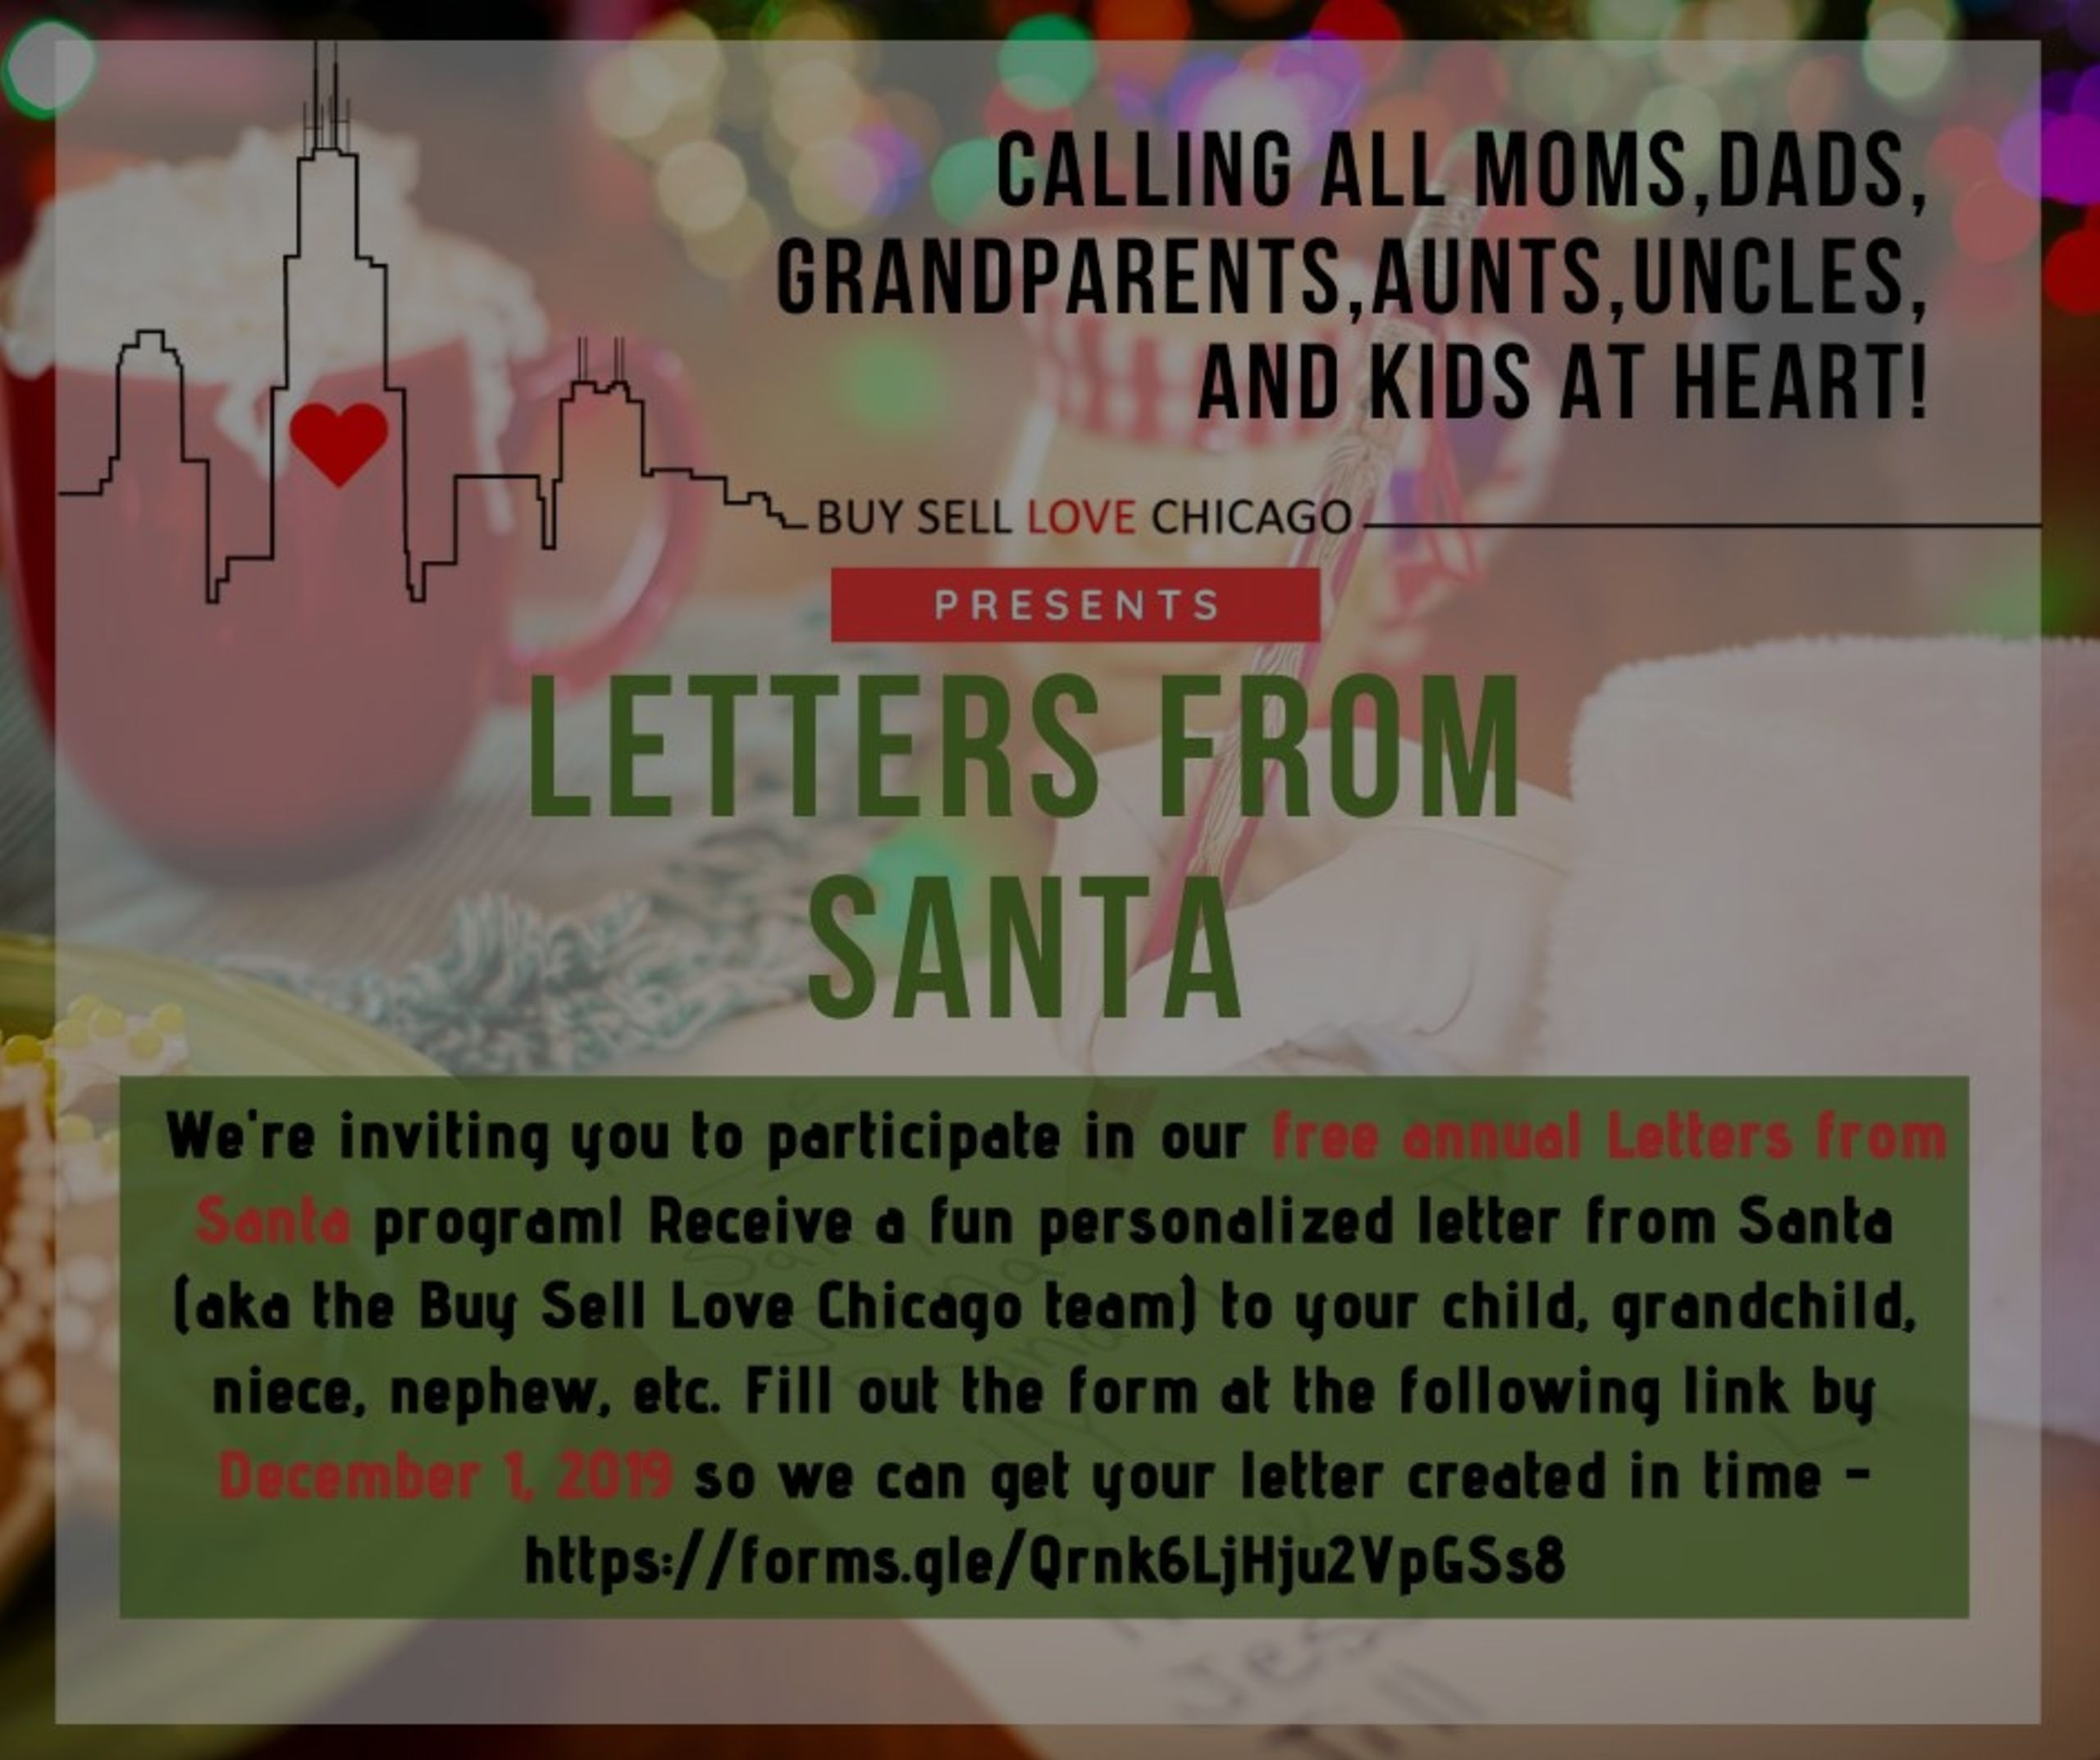 FREE LETTERS FROM SANTA!